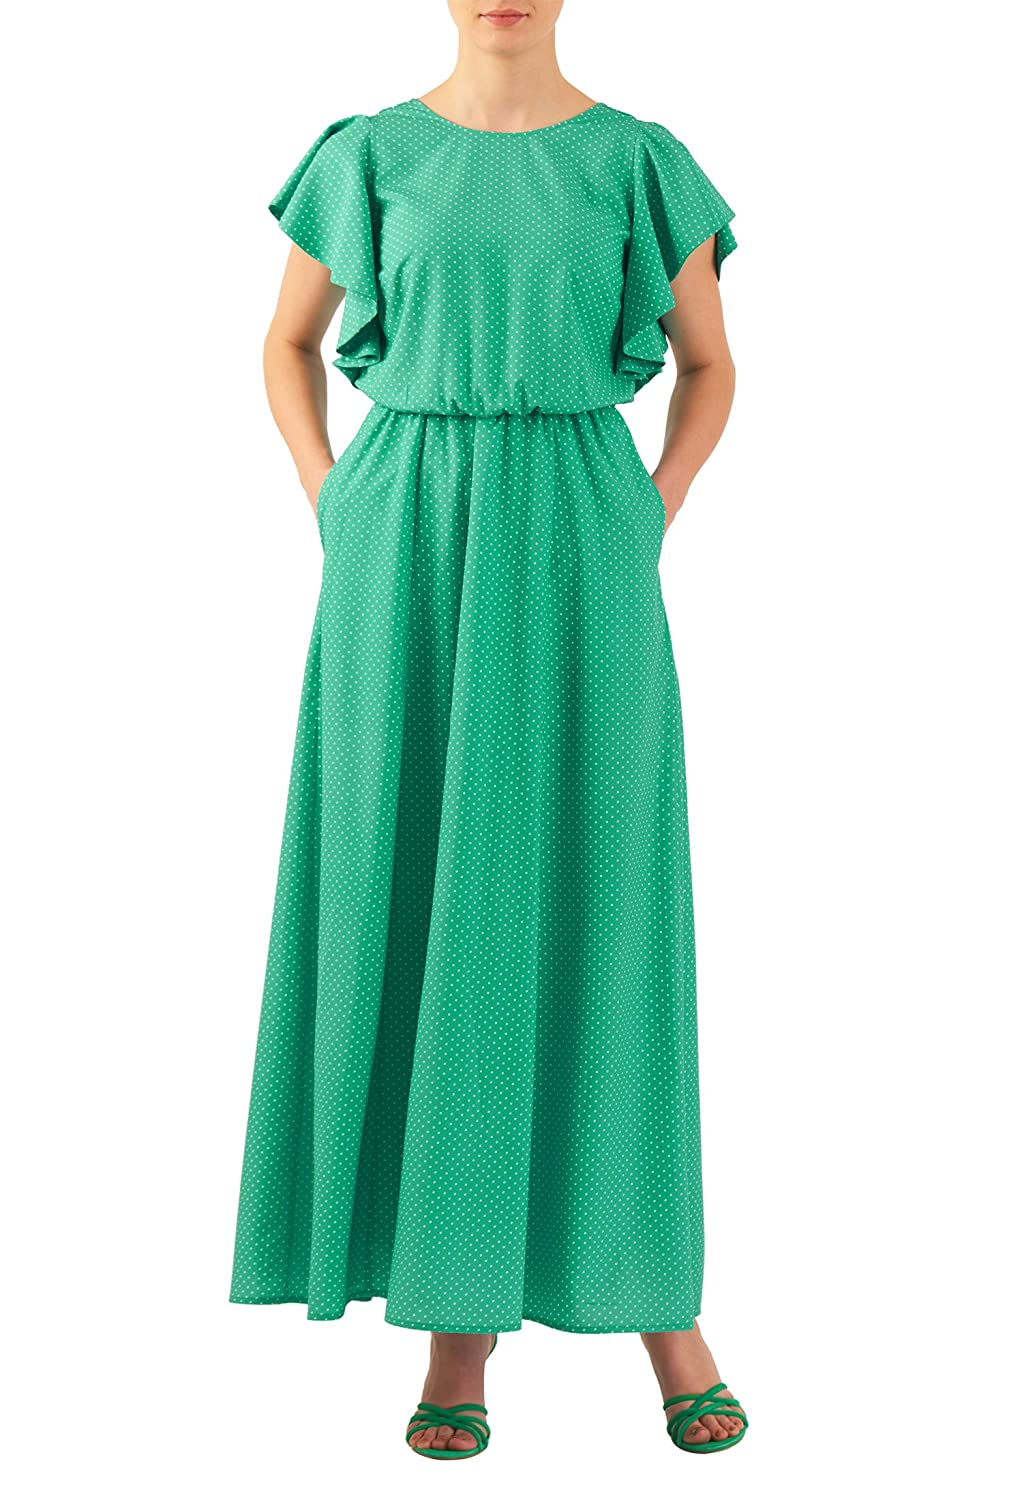 1930s Style Fashion Dresses eShakti Womens Custom Flutter sleeve dot print crepe maxi dress Green/white.95 AT vintagedancer.com